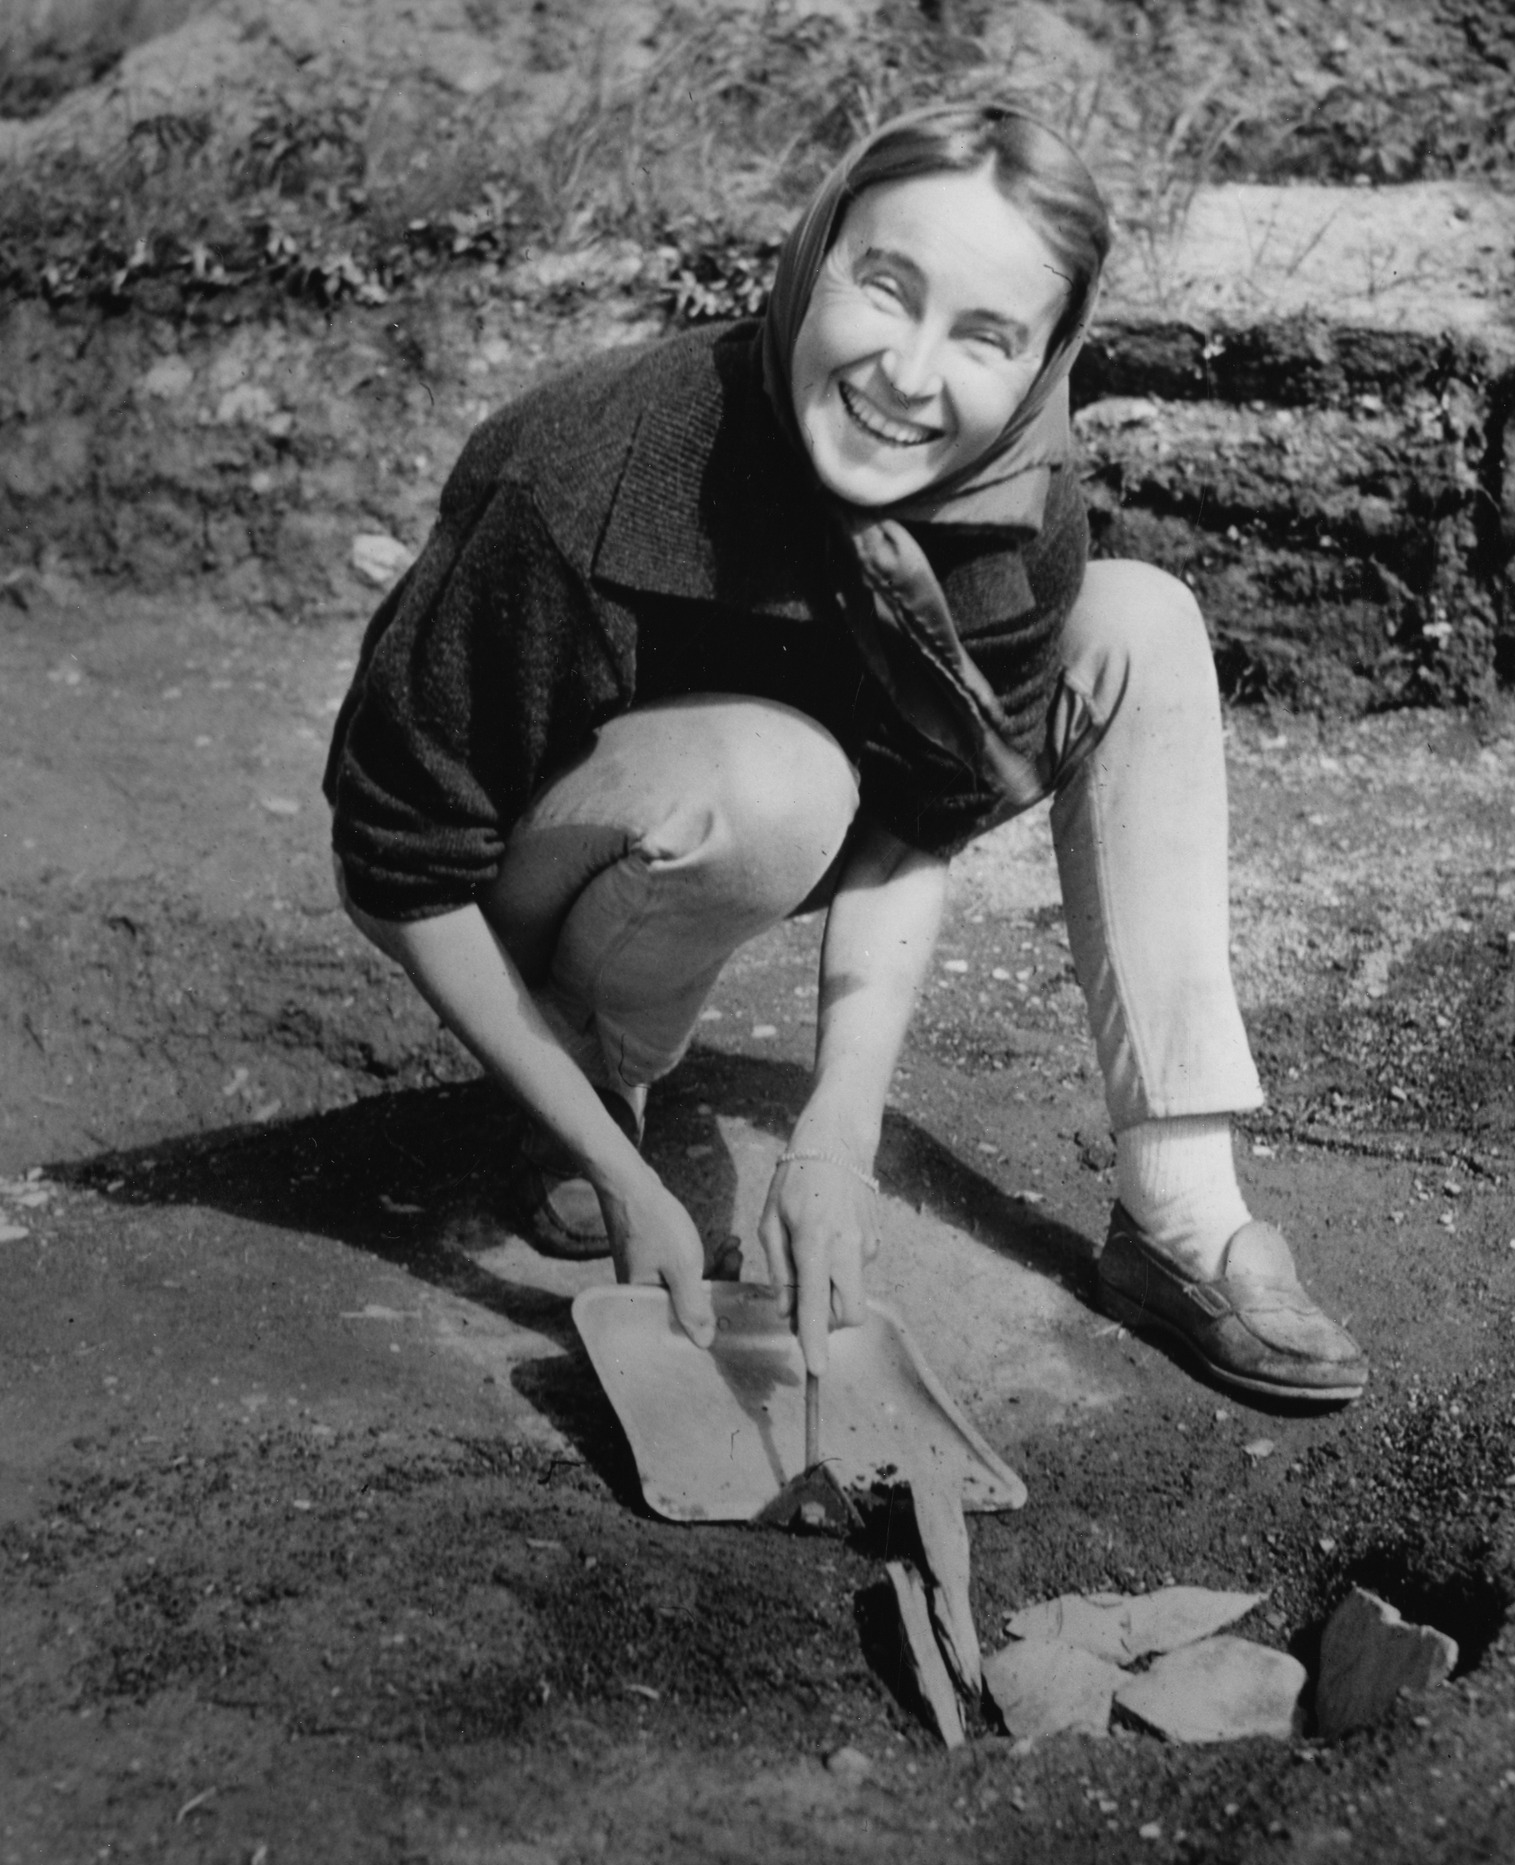 Norwegian archaeologist  Anne Stine Ingstad  at L'anse aux Meadows in 1963.  A team of archaeologists led by Ingstad discovered the only confirmed Viking Age site in North America so far, L'anse aux Meadows.  Image: Smithsonian Institute .